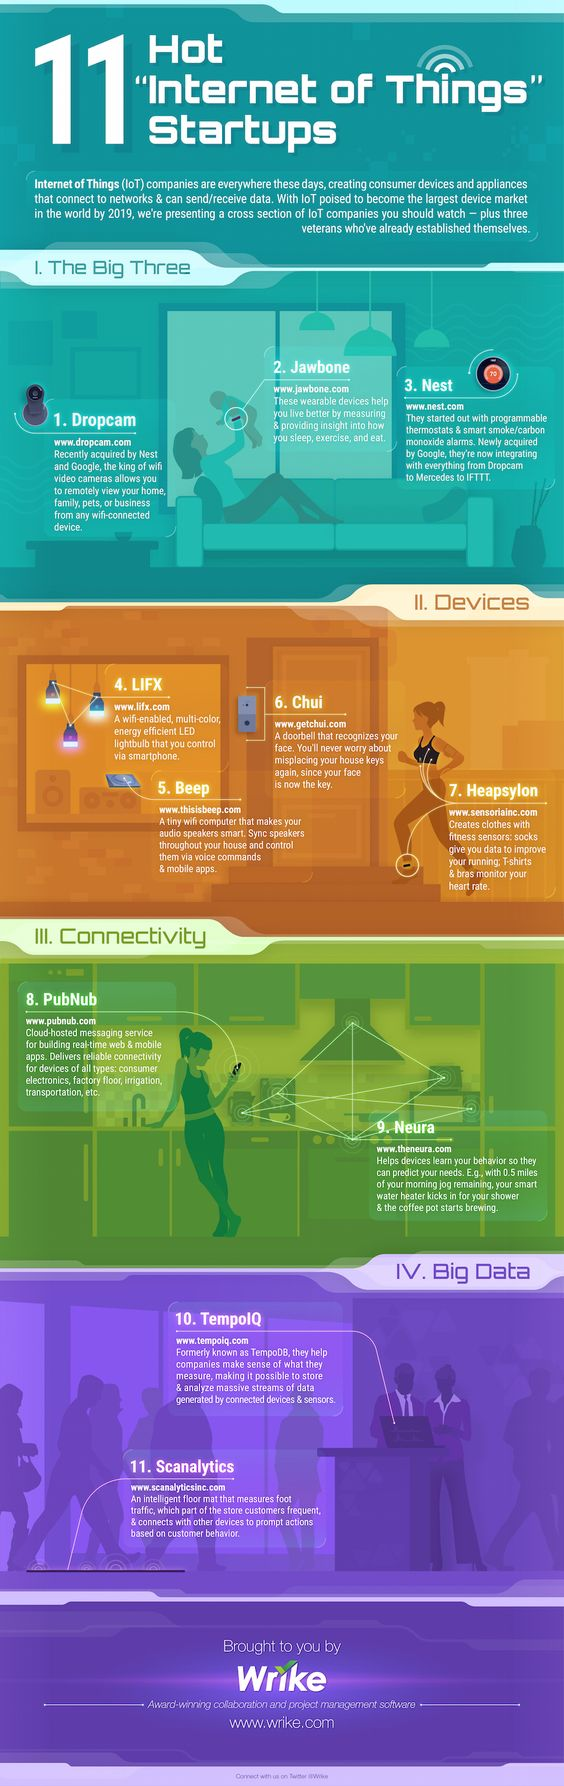 11 Hot Internet of Things Startups